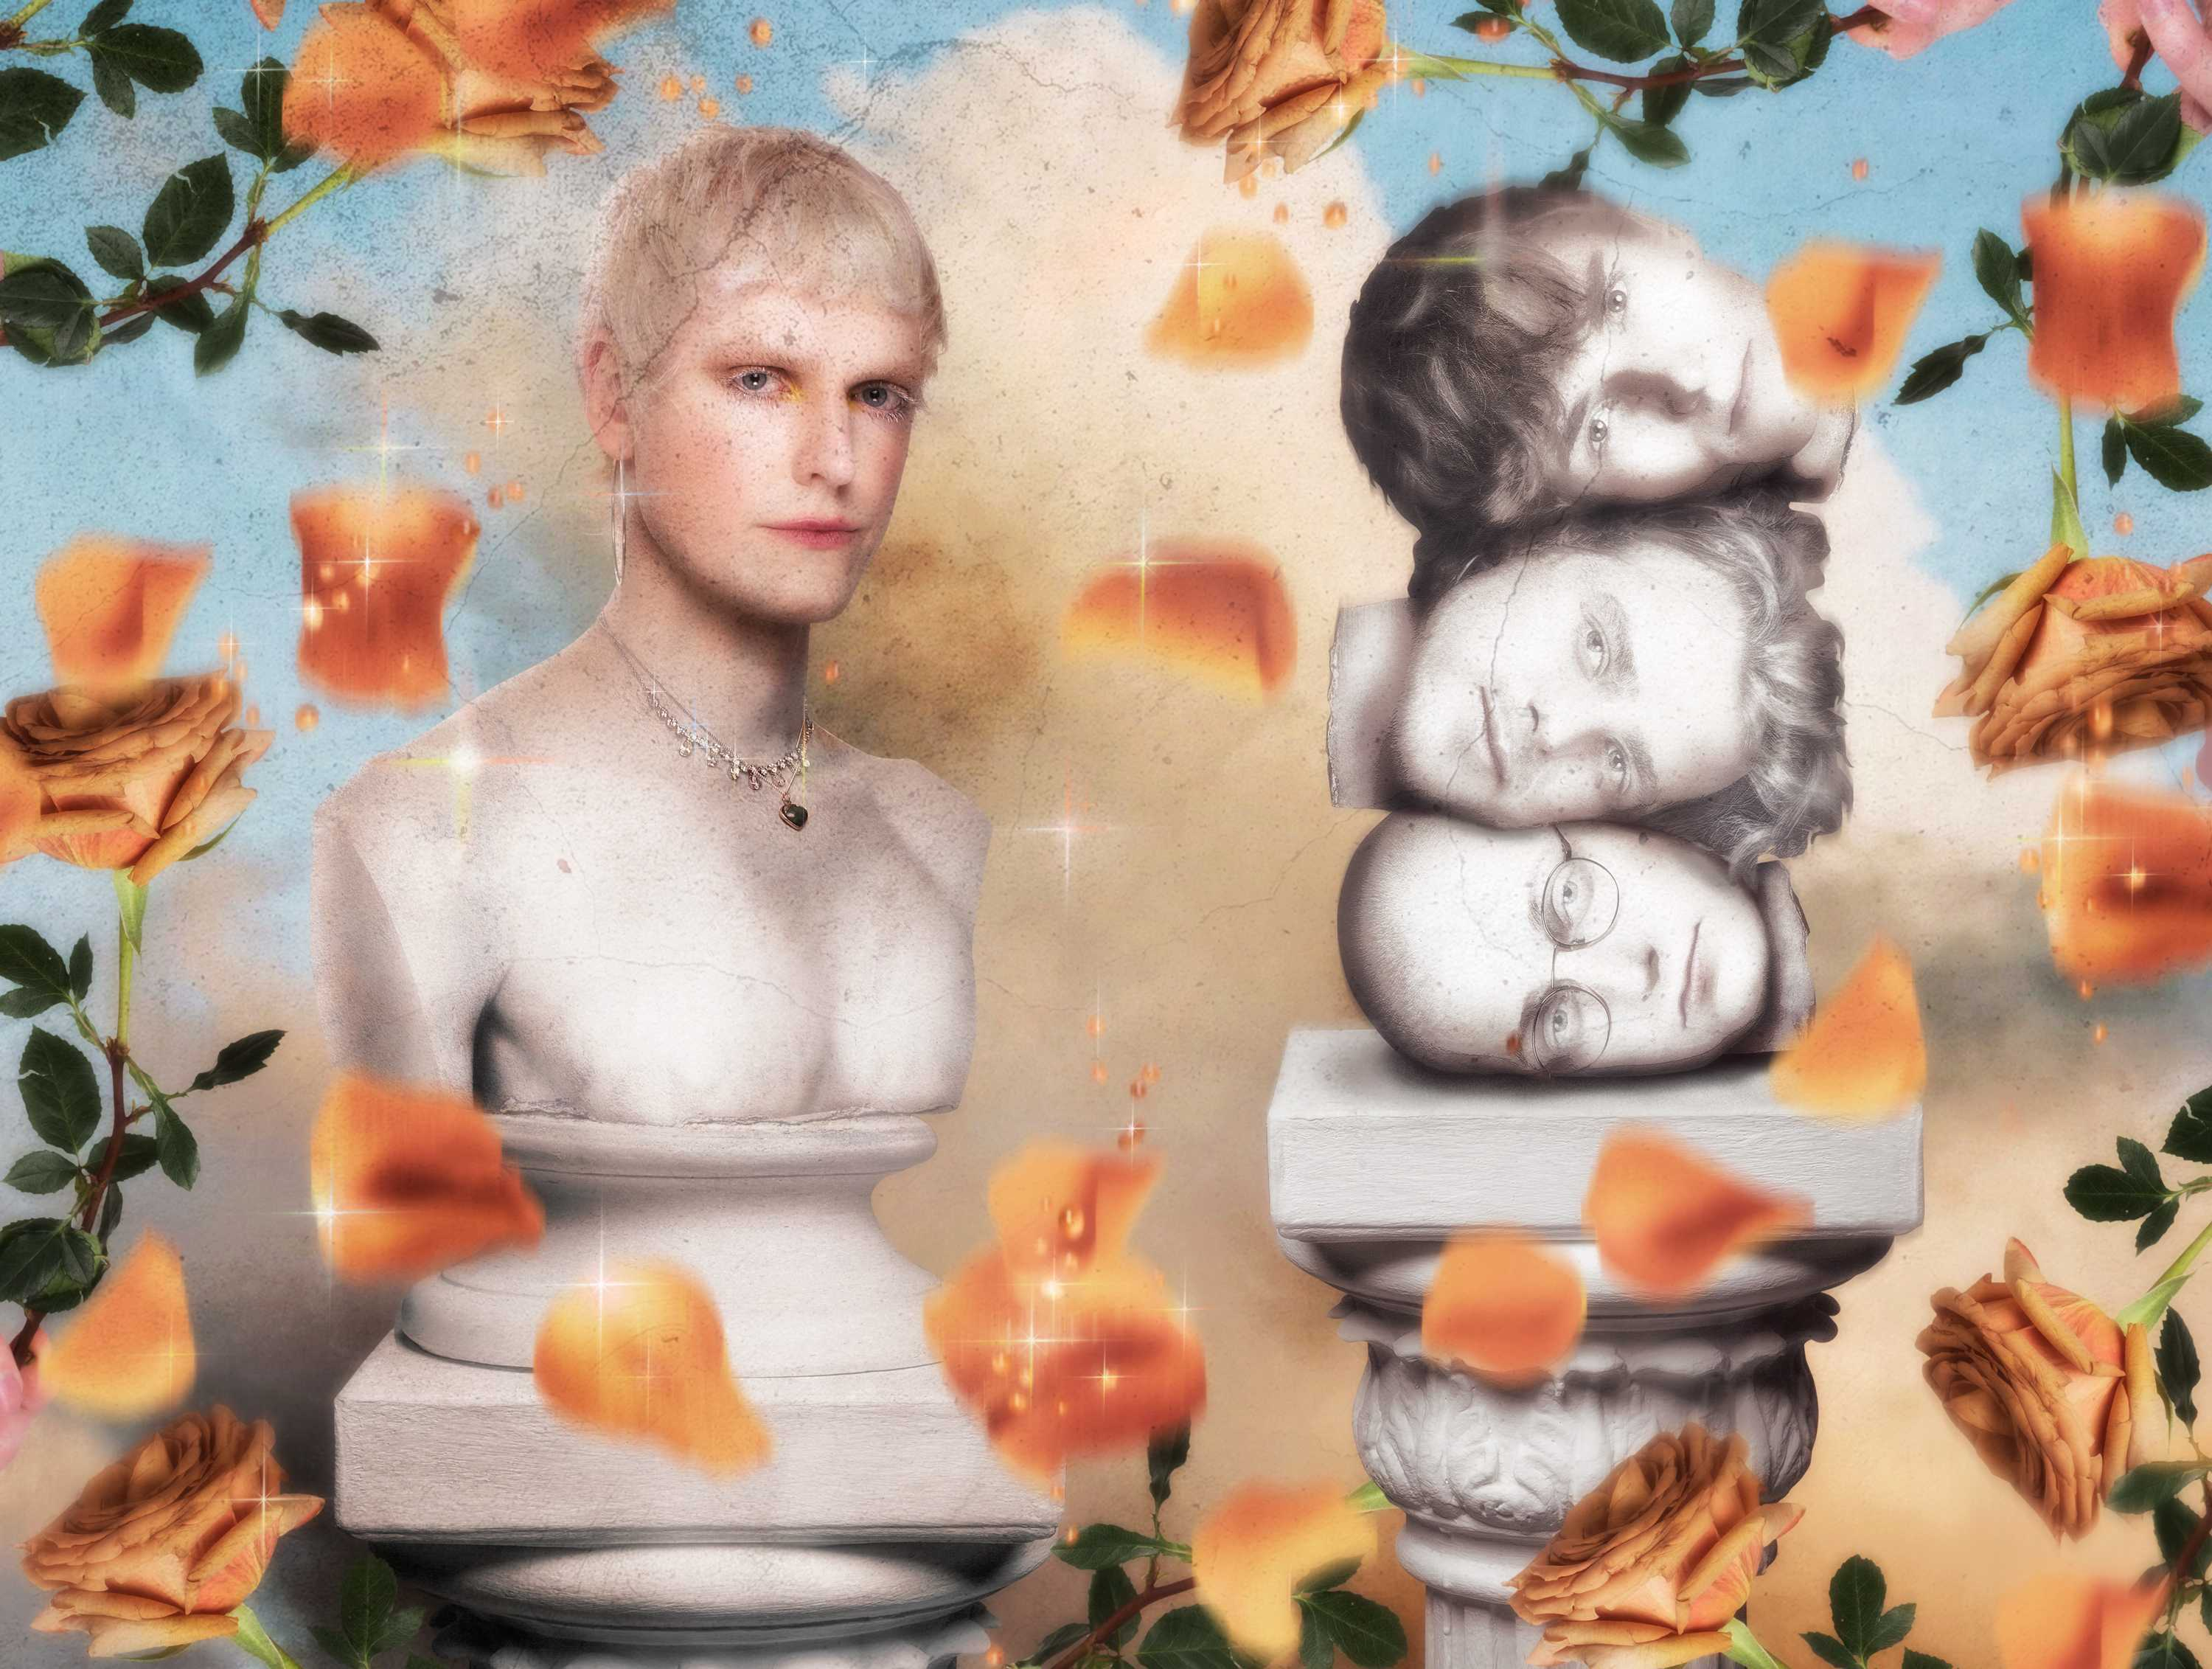 Sundara Karma share 'Little Smart Houses'